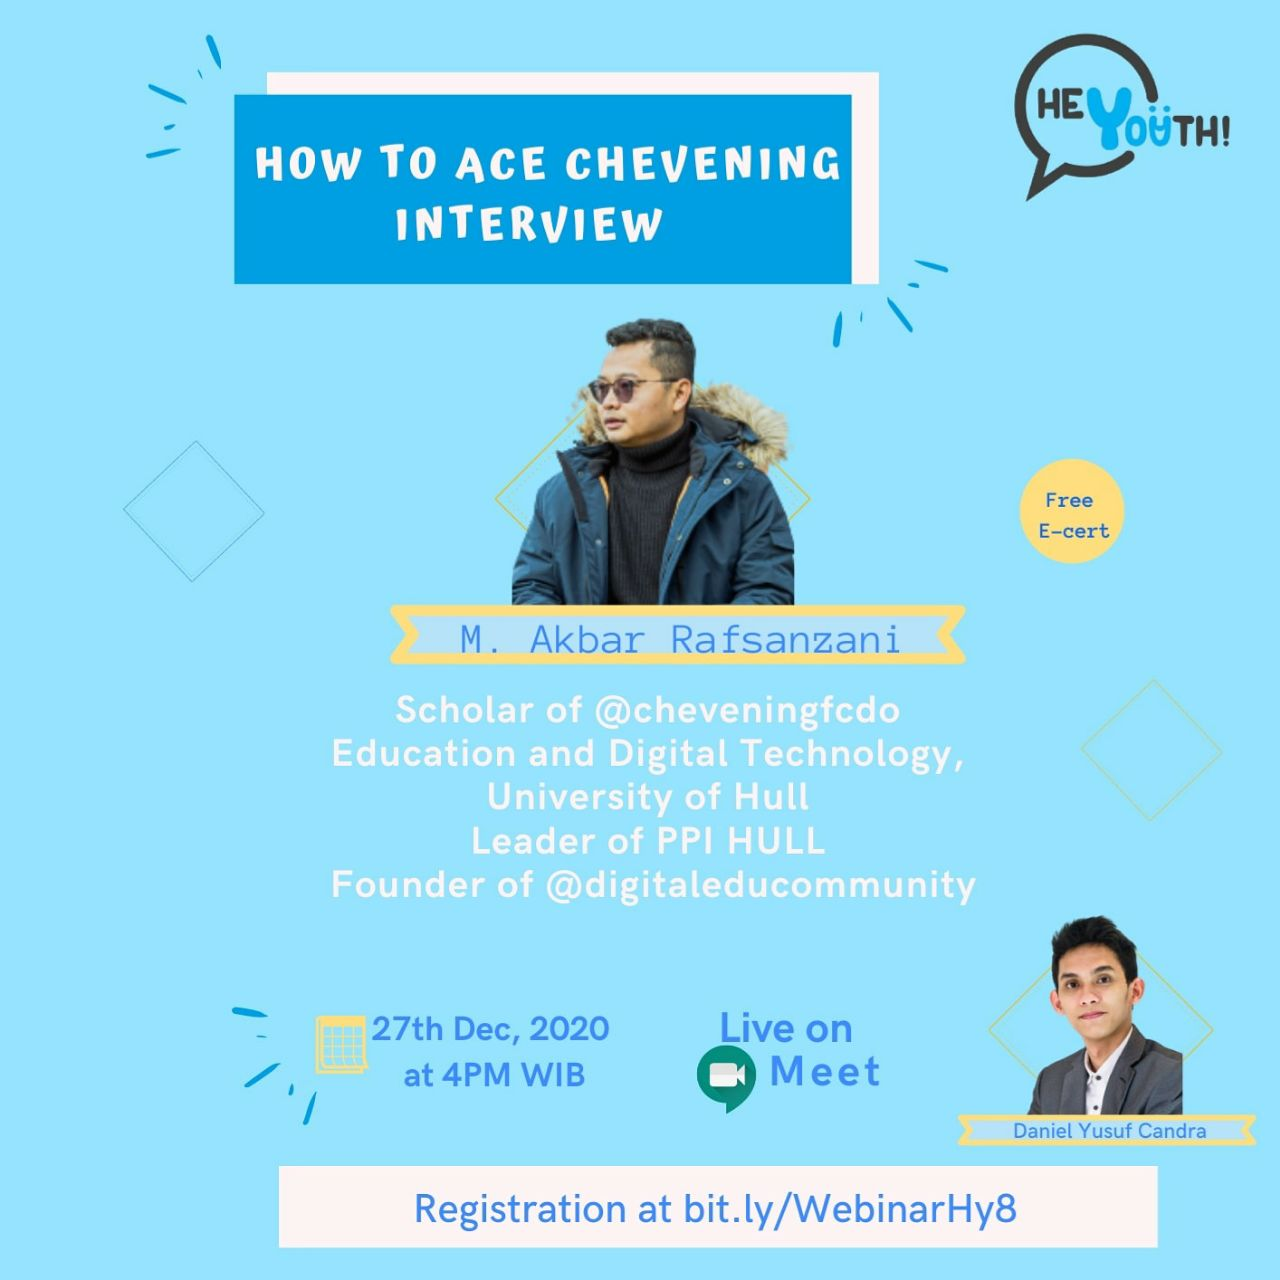 How To Ace Chevening Interview